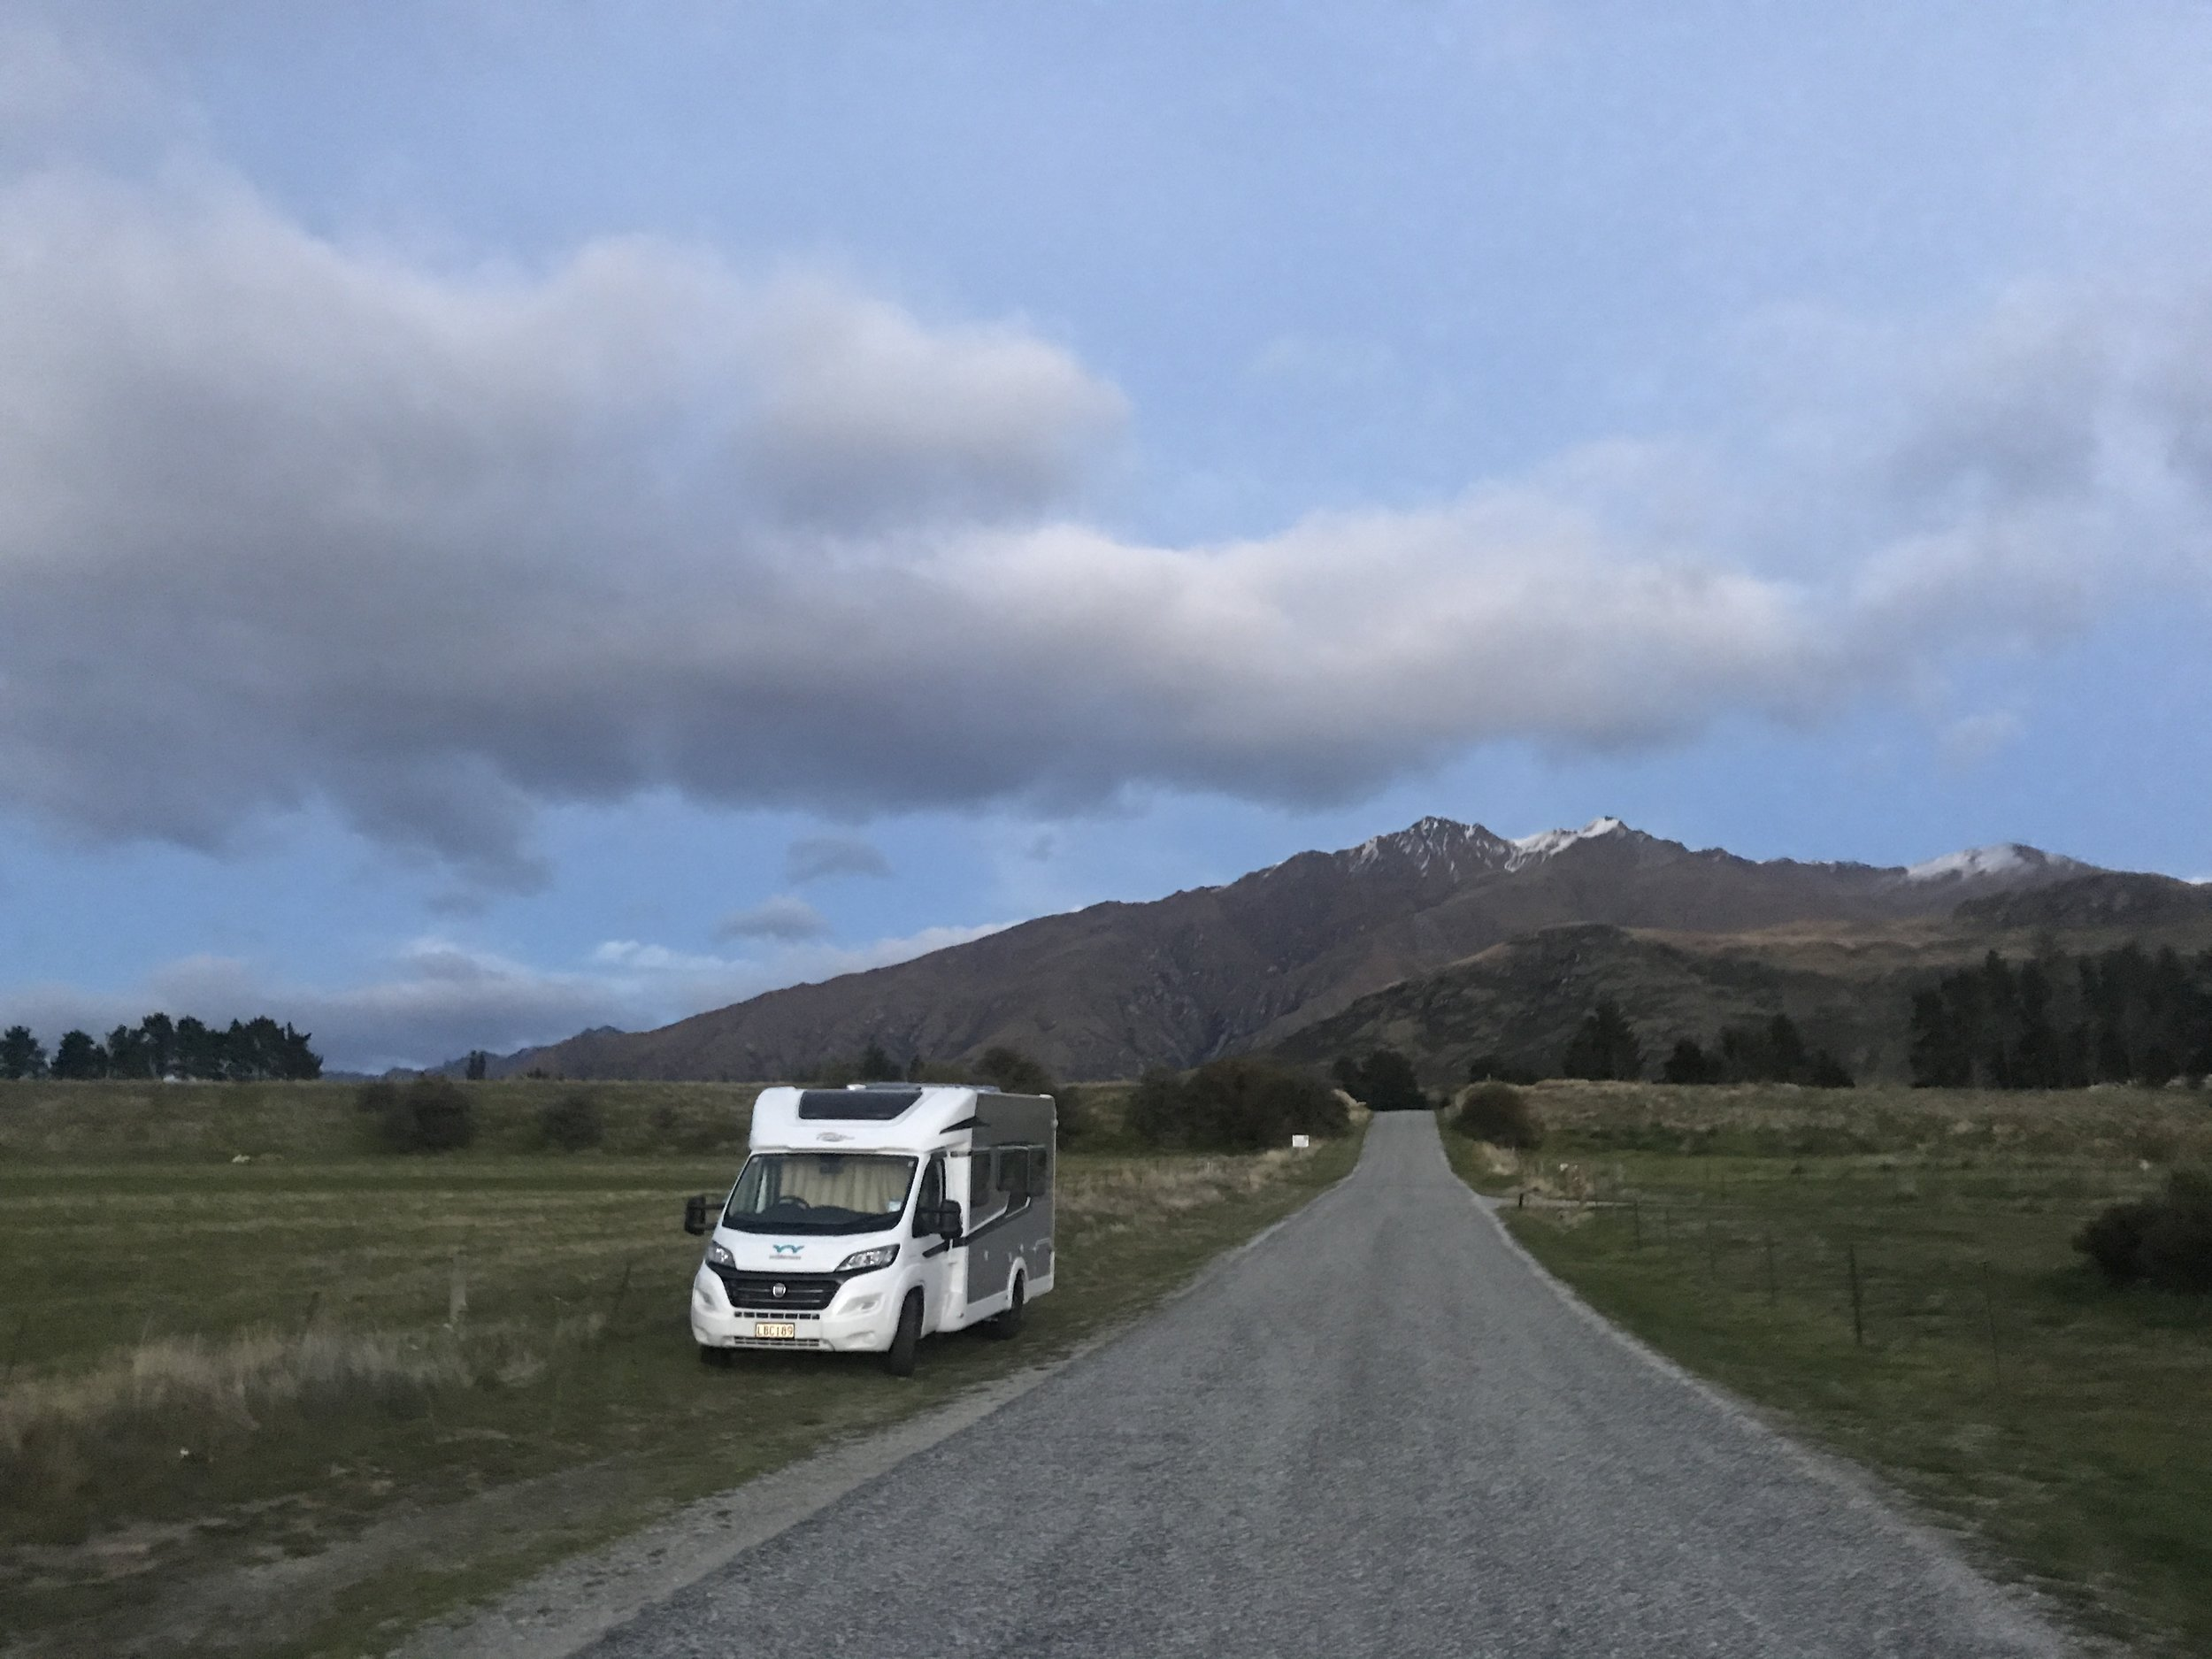 Camping roadside (responsibly - note, self-contained) near Lake Wanaka